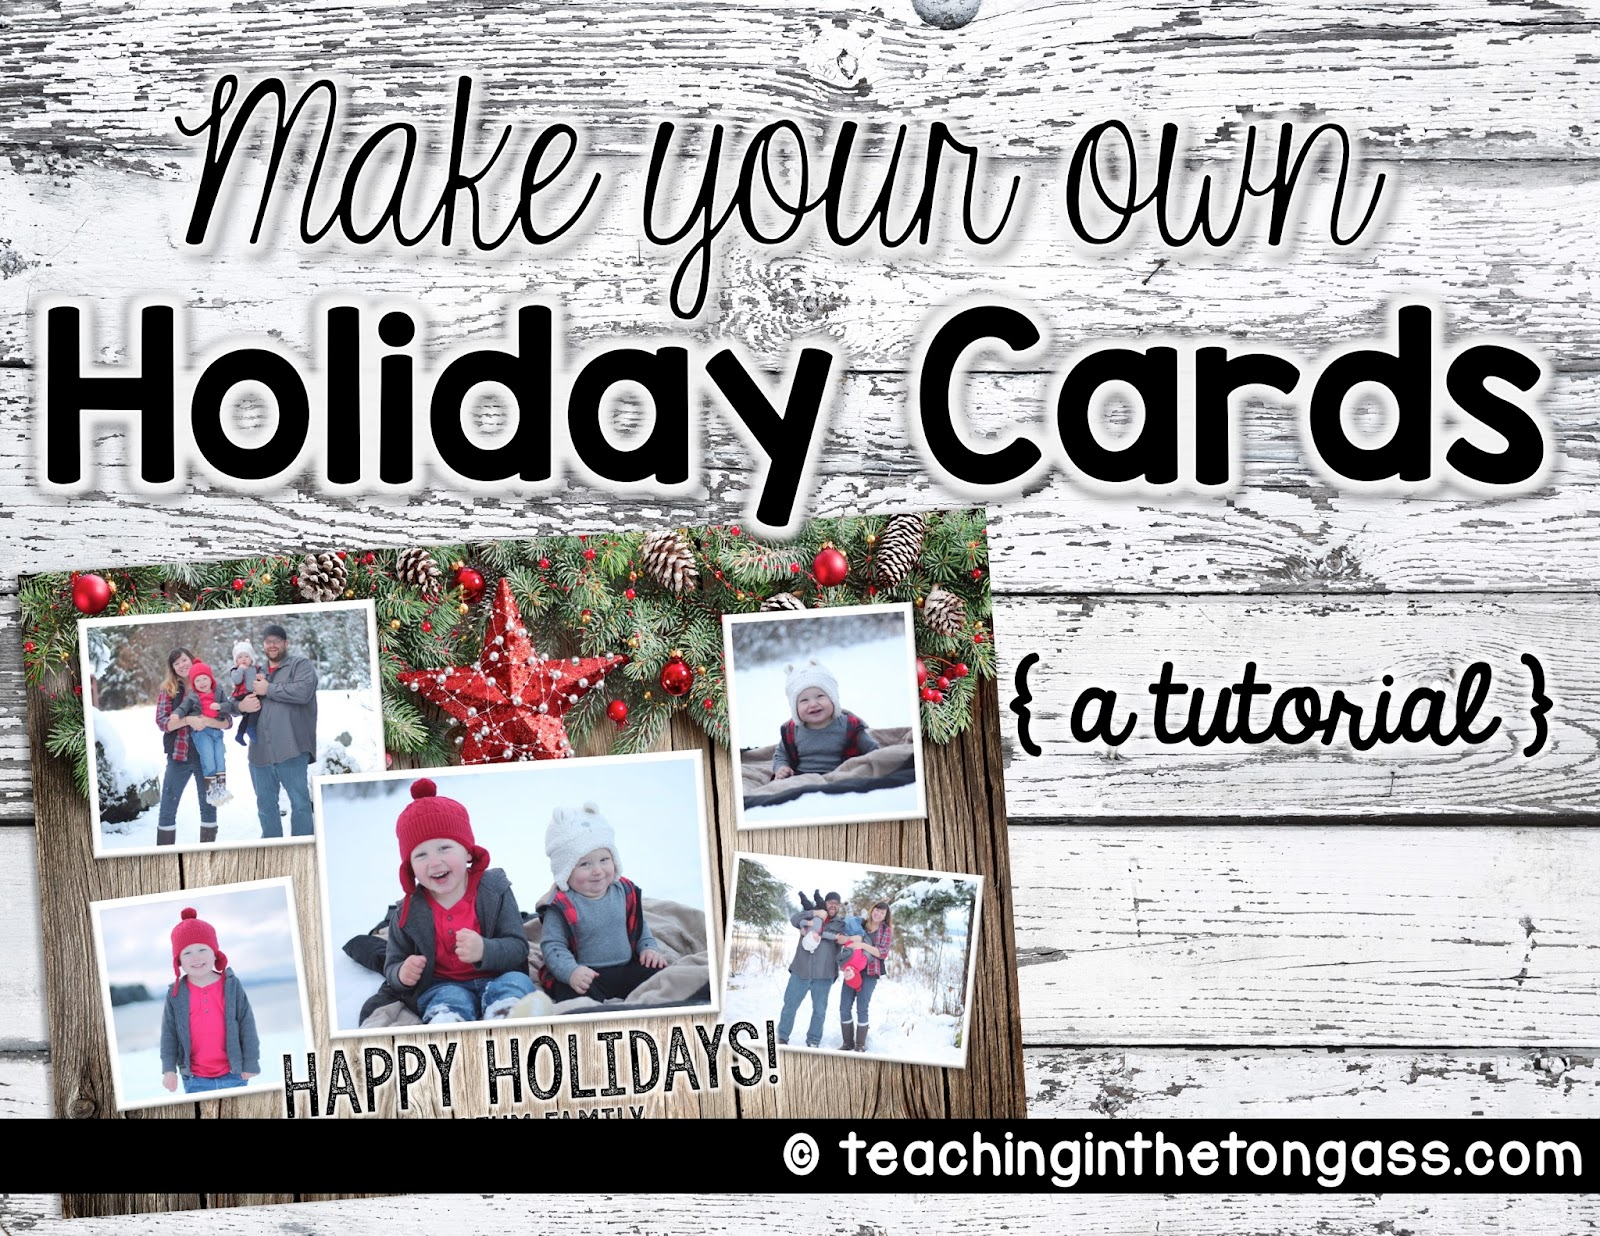 How to make your own holiday cards teaching in the tongass for How to make your own christmas cards